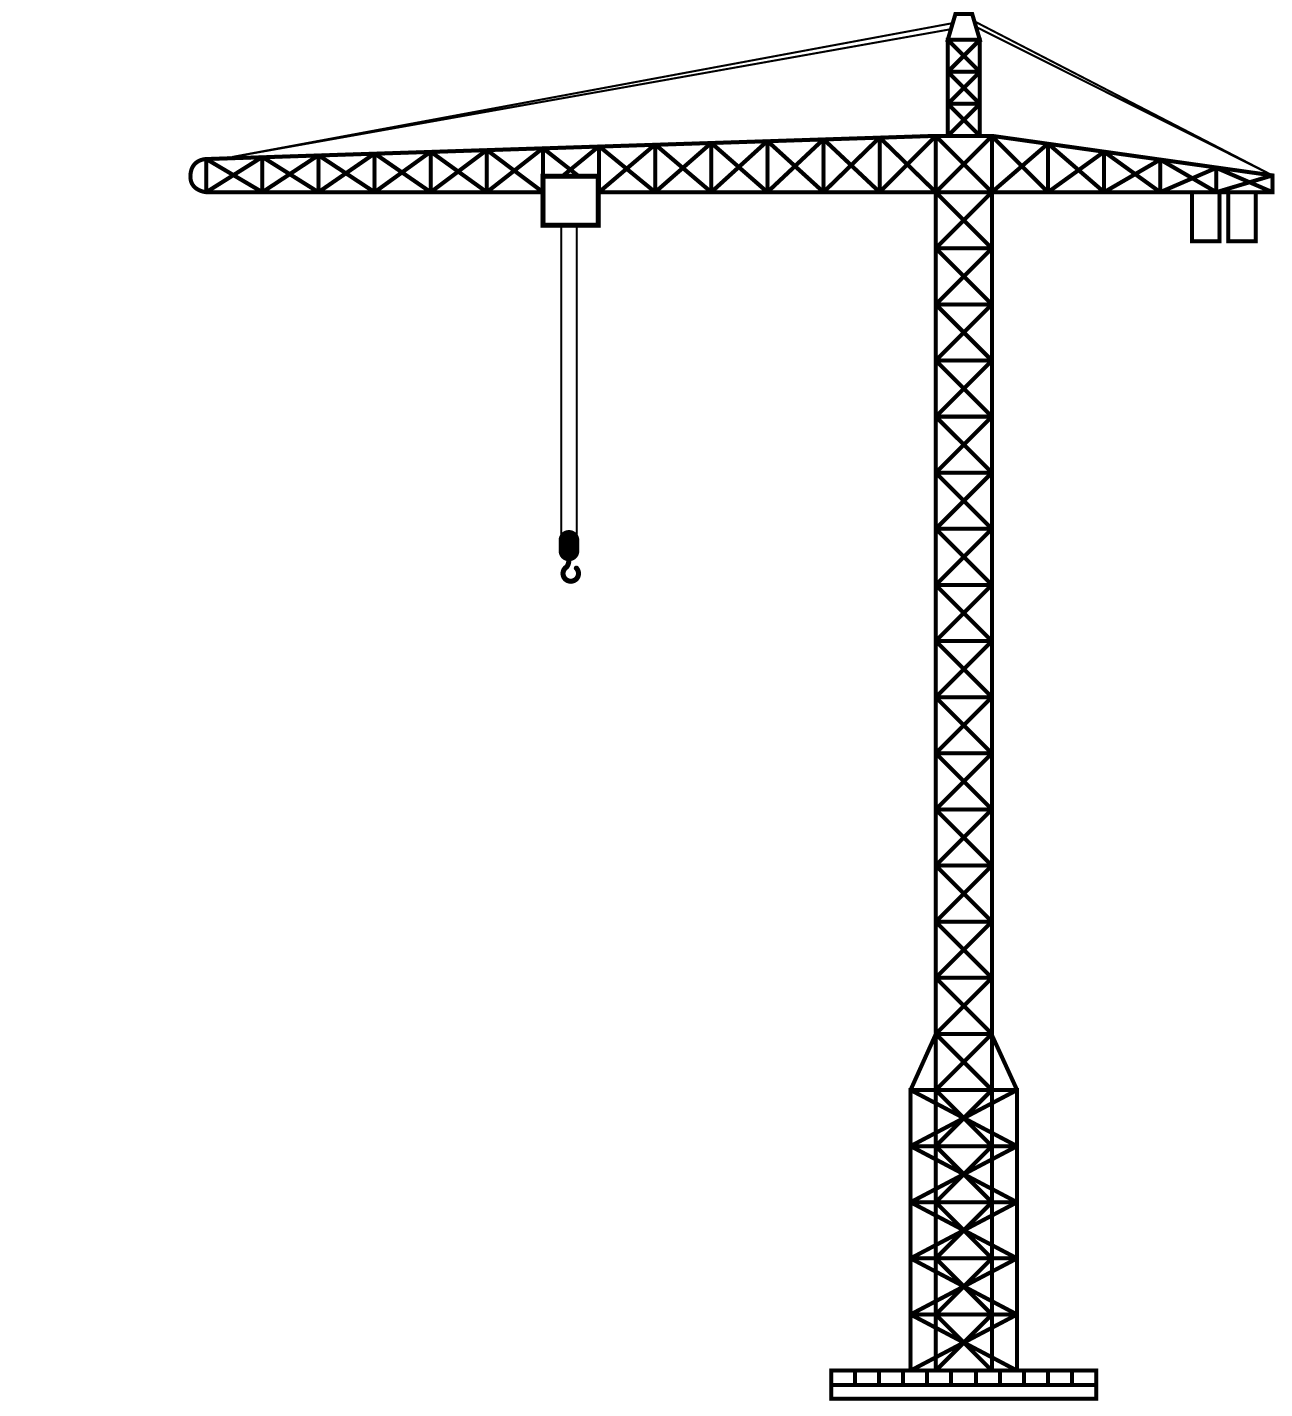 Construction Clipart Crane Construction Crane Transparent